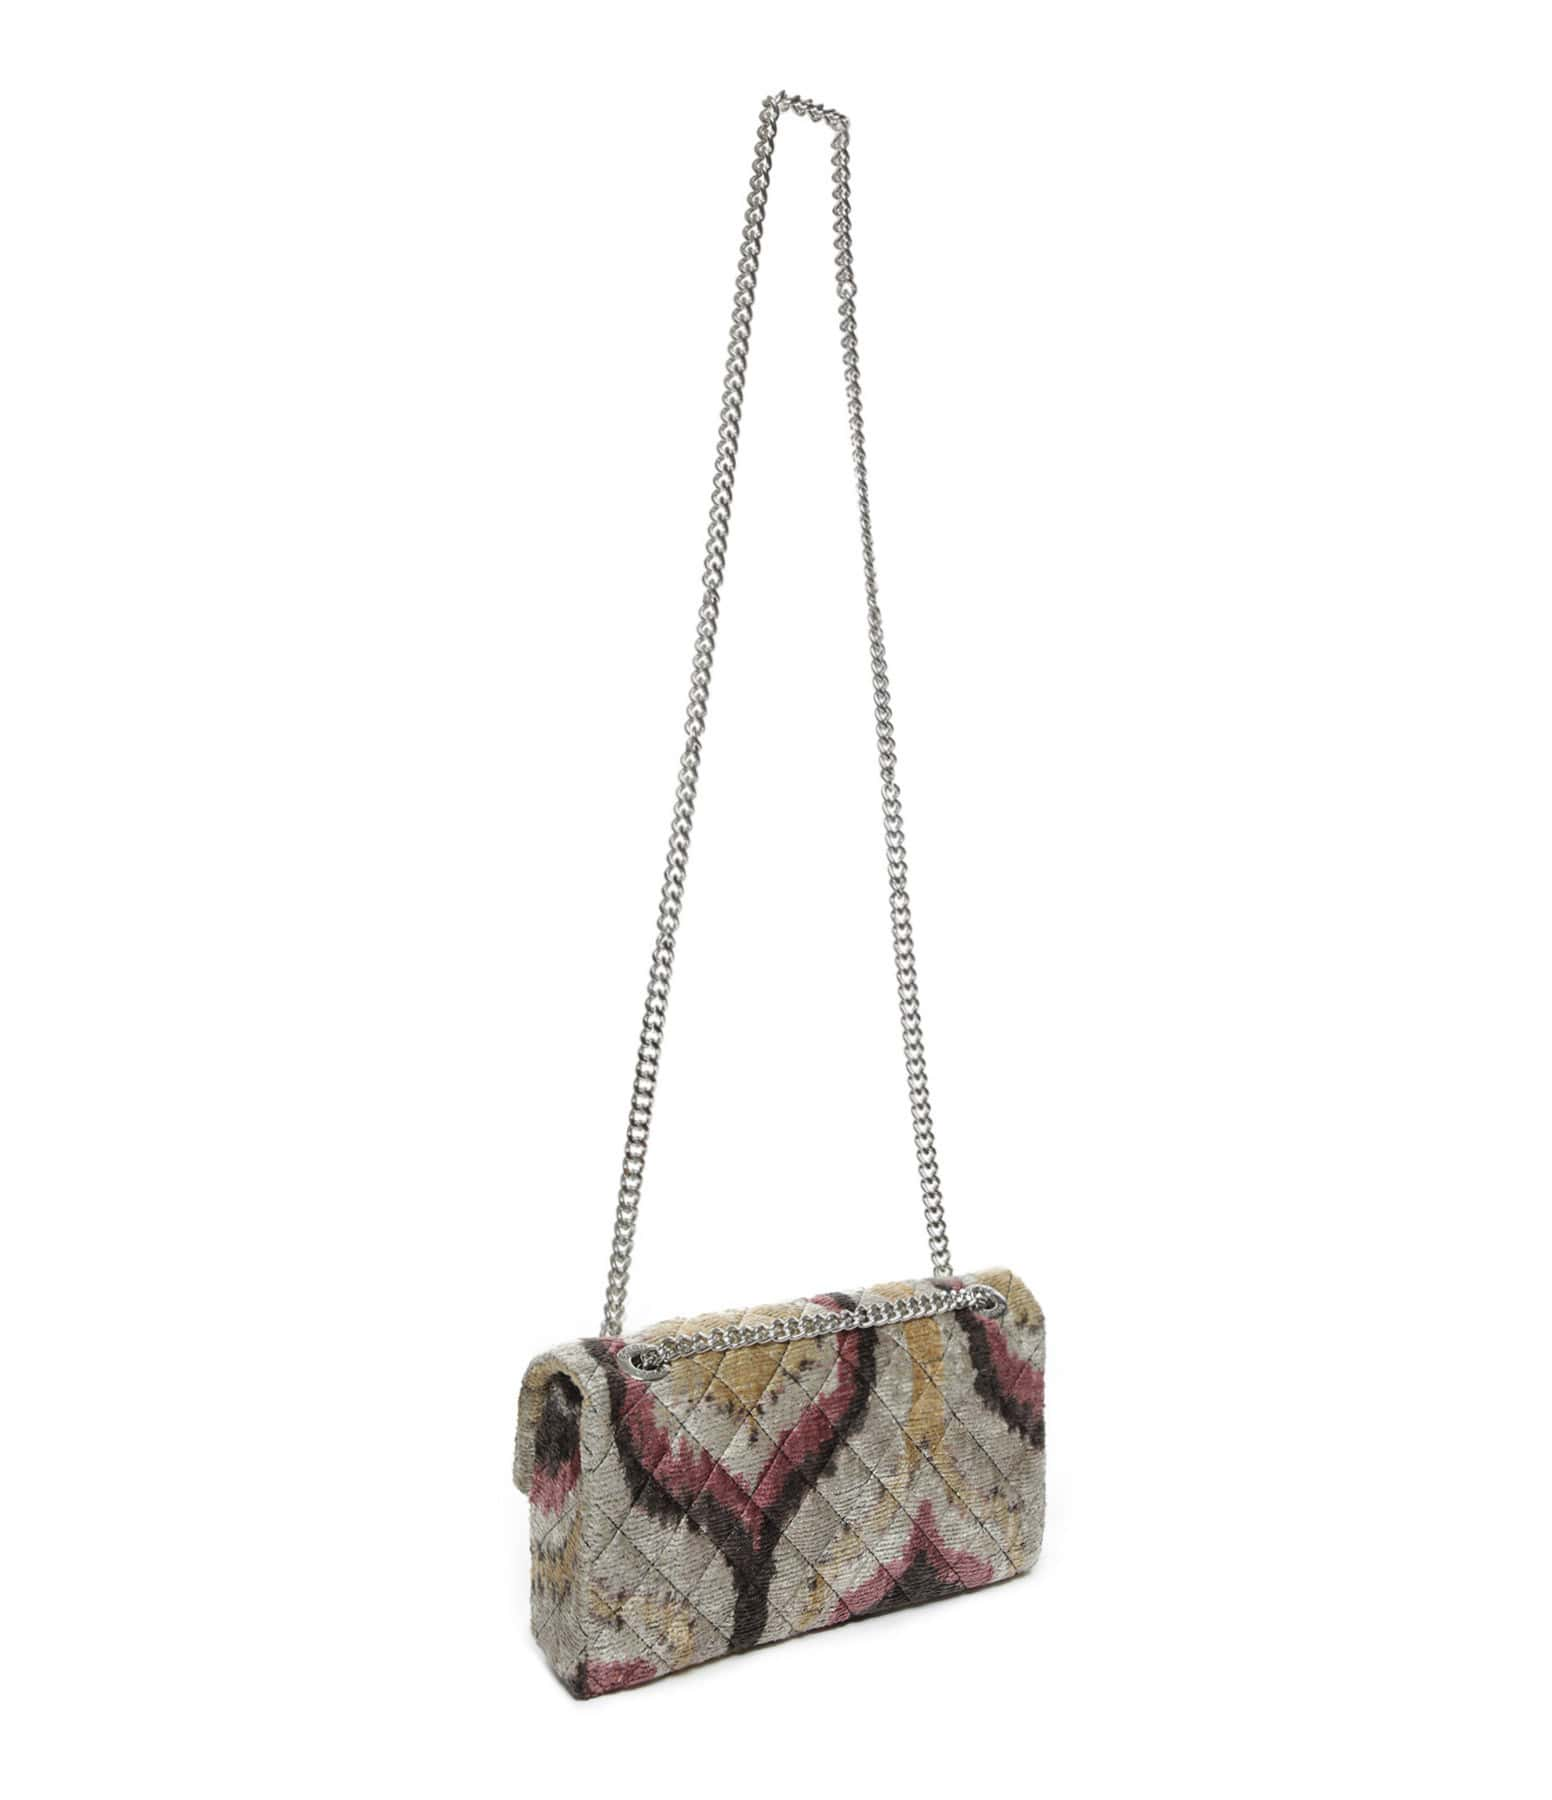 ROUGH STUDIOS - Sac Bandita Velours Soie Multicolore